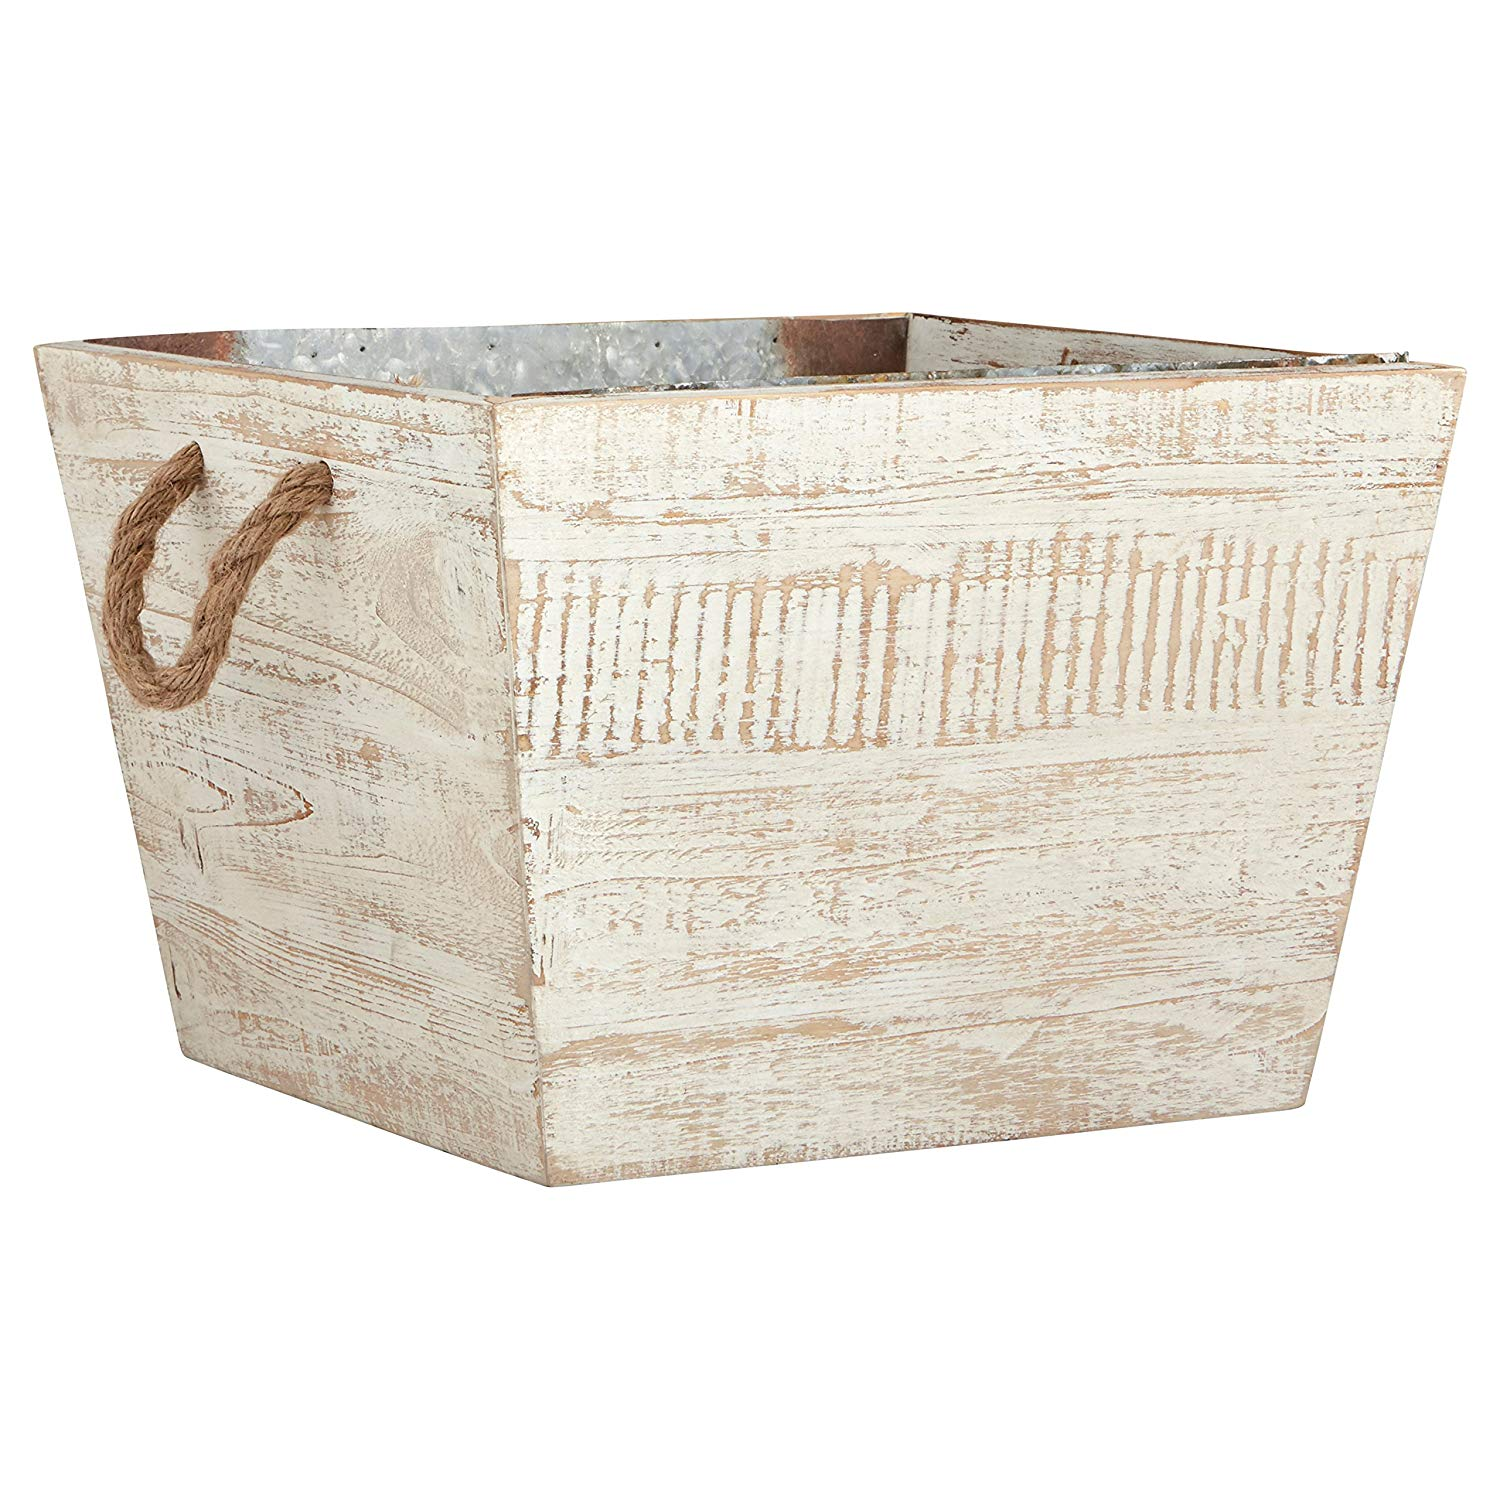 Update your storage game with this White Washed Modern Farmhouse Wood and Galvanized Metal Decor Storage Bin Basket, perfect for kids toys in a playroom, wood storage by the fireplace or blankets in the living room.